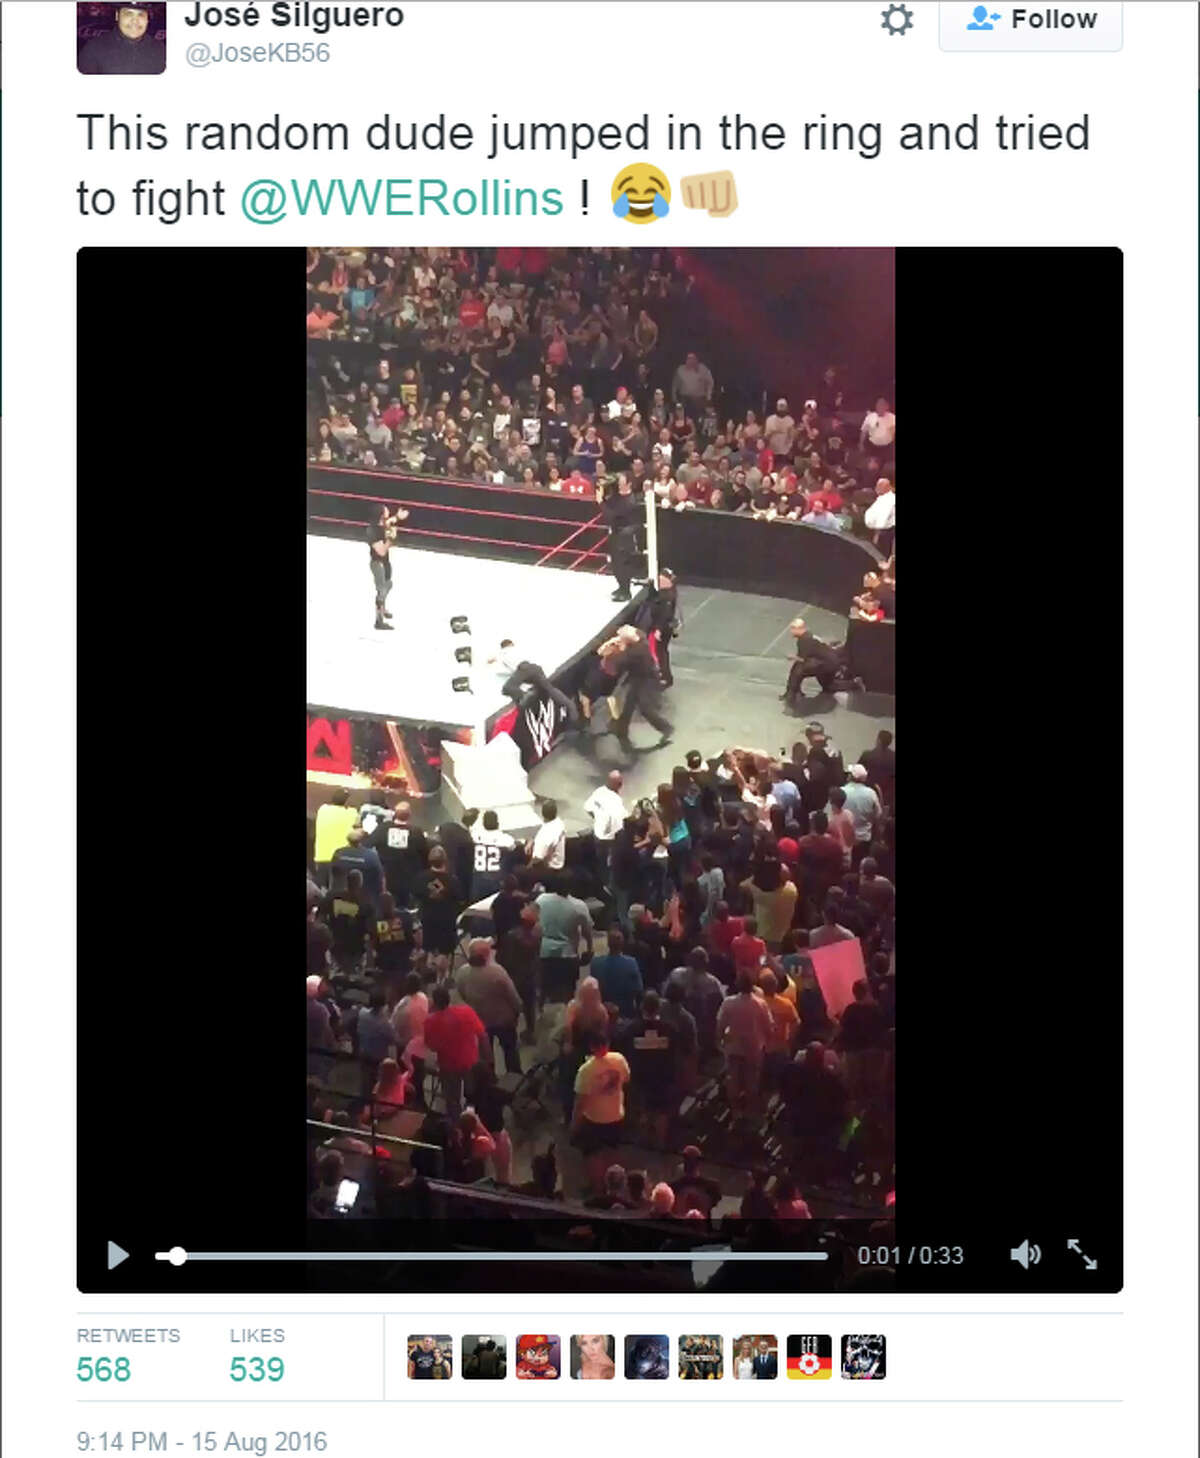 Footage from the August 15, 2016, event shows Edward Ferrero, who apparently jumped a gated area, run into the ring while WWE superstar Seth Rollins is speaking on the mic.